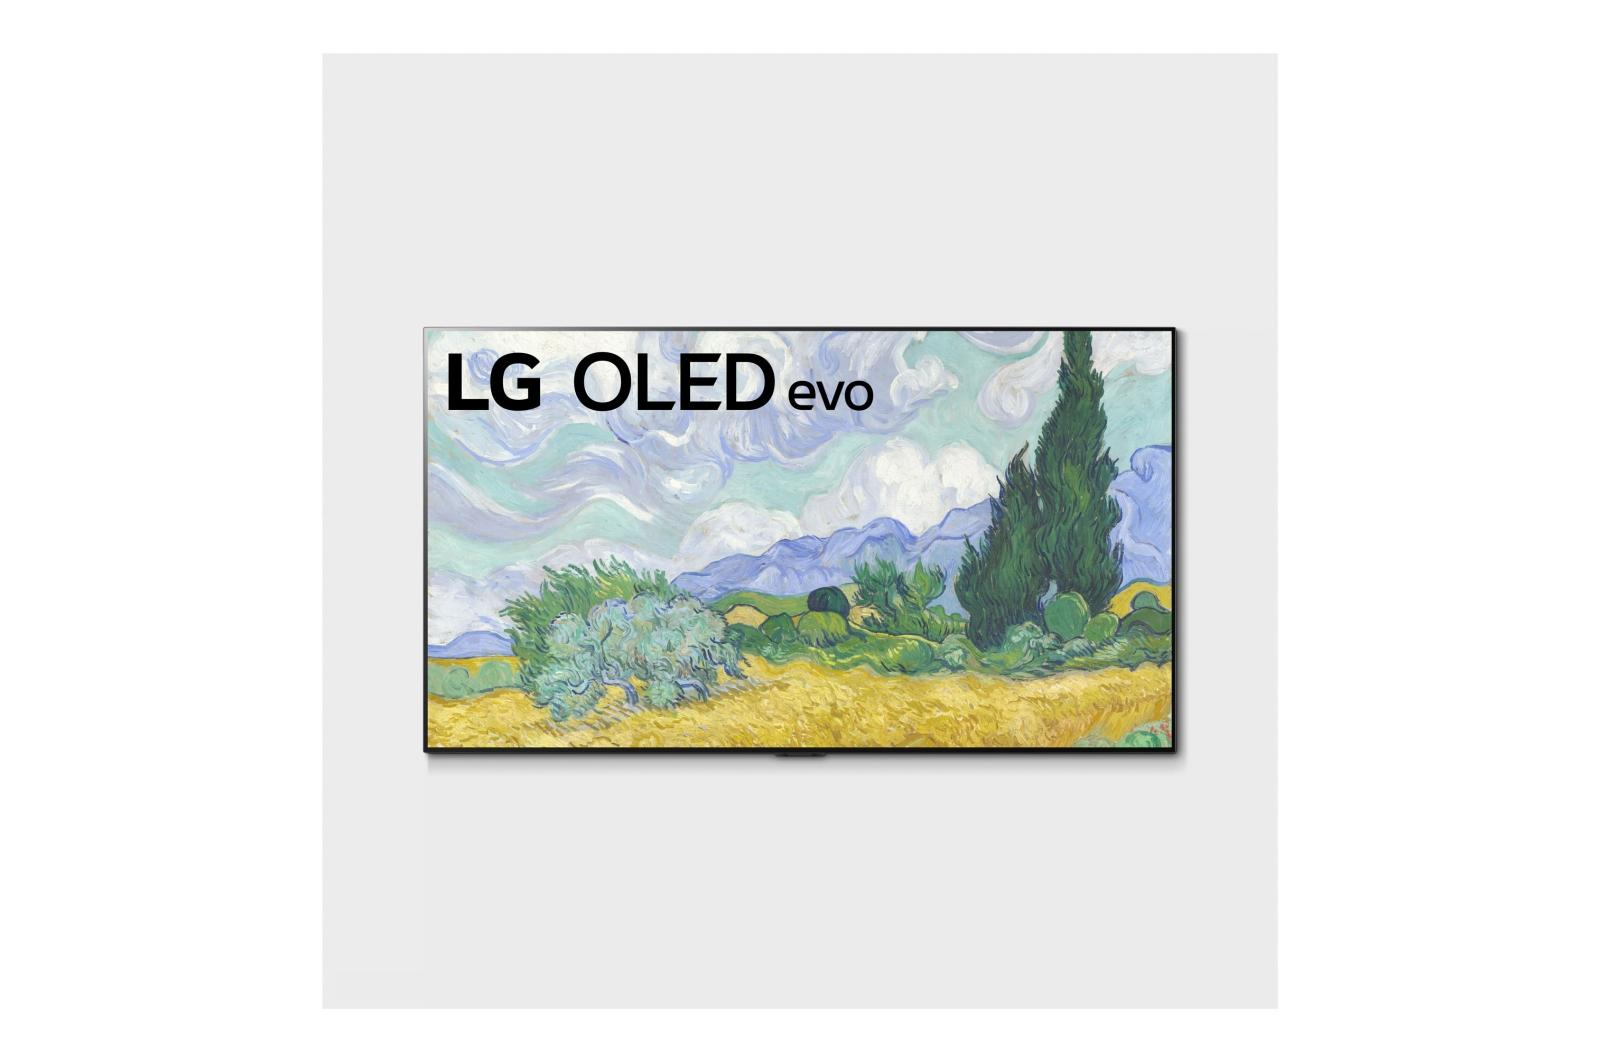 LG G1 55 inch Class with Gallery Design 4K Smart OLED evo TV w/AI ThinQ® (54.6'' Diag)